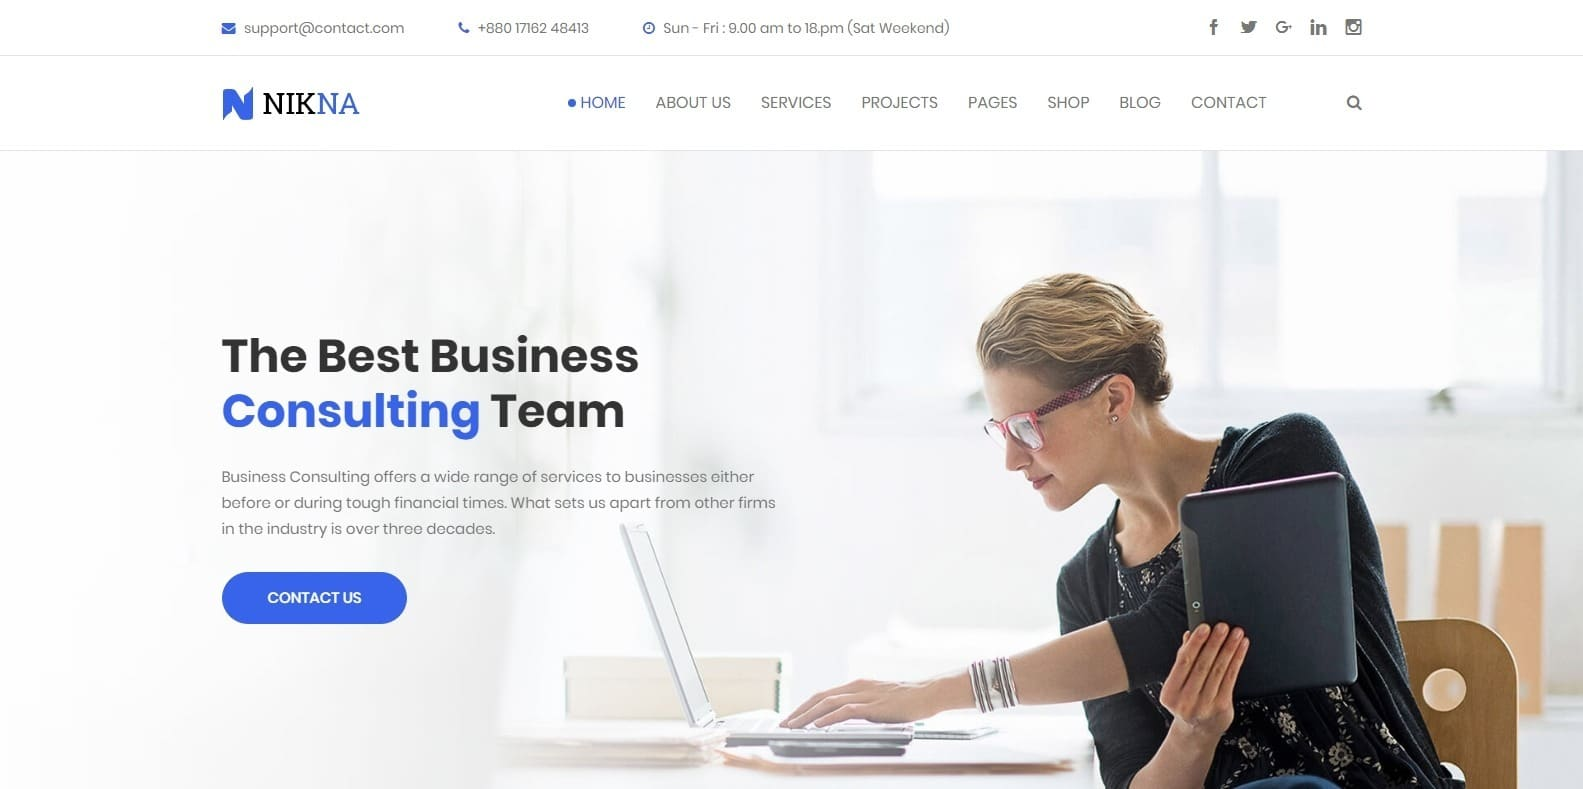 nikna-consulting-website-template